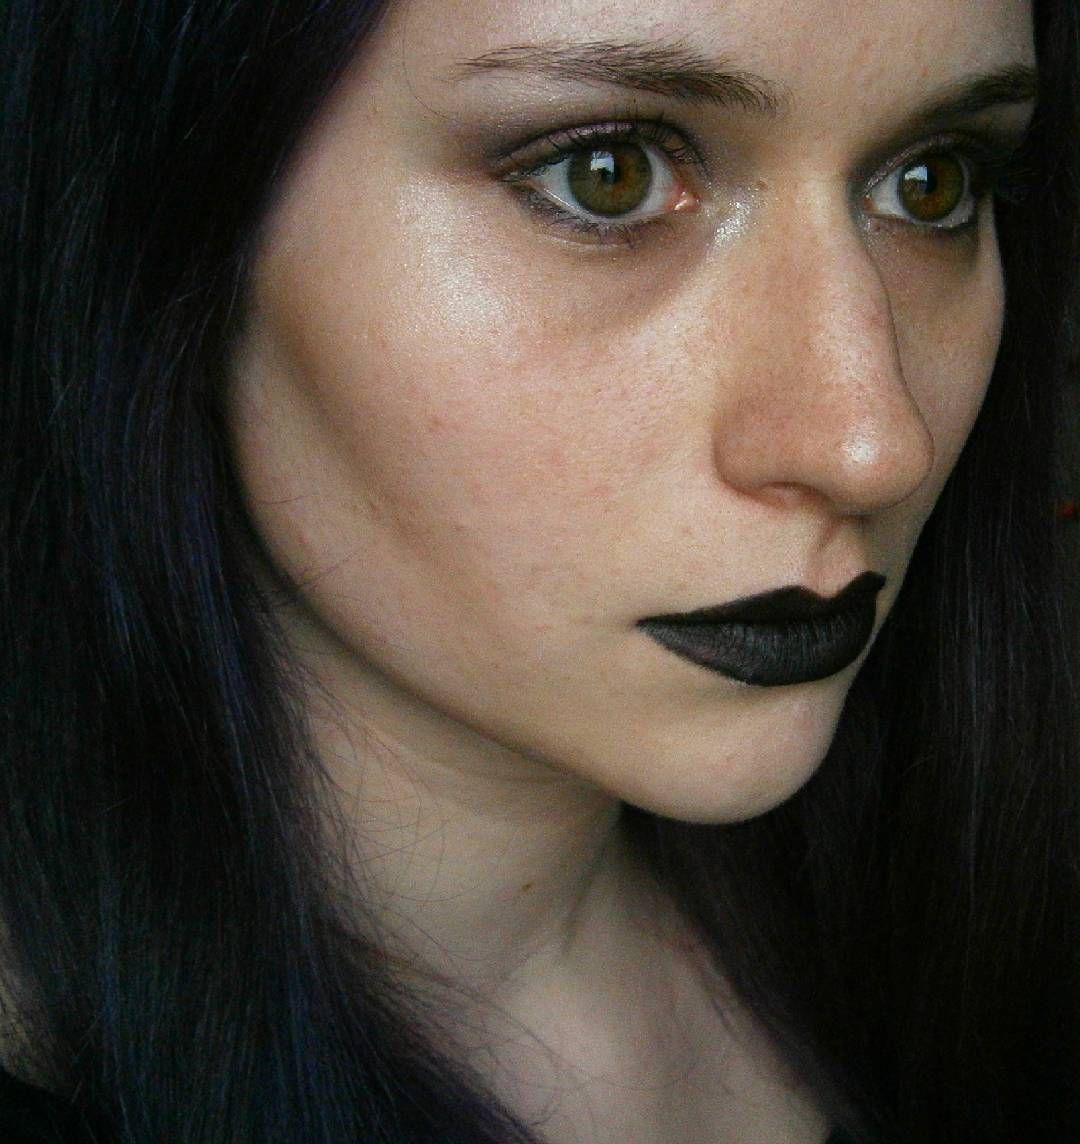 ''As above, so below, as the Universe, so the soul, as without, so within.'' - Unknown #blacklips #black #purplehair #highlighter #makeup #goth #girl #nabla #mac